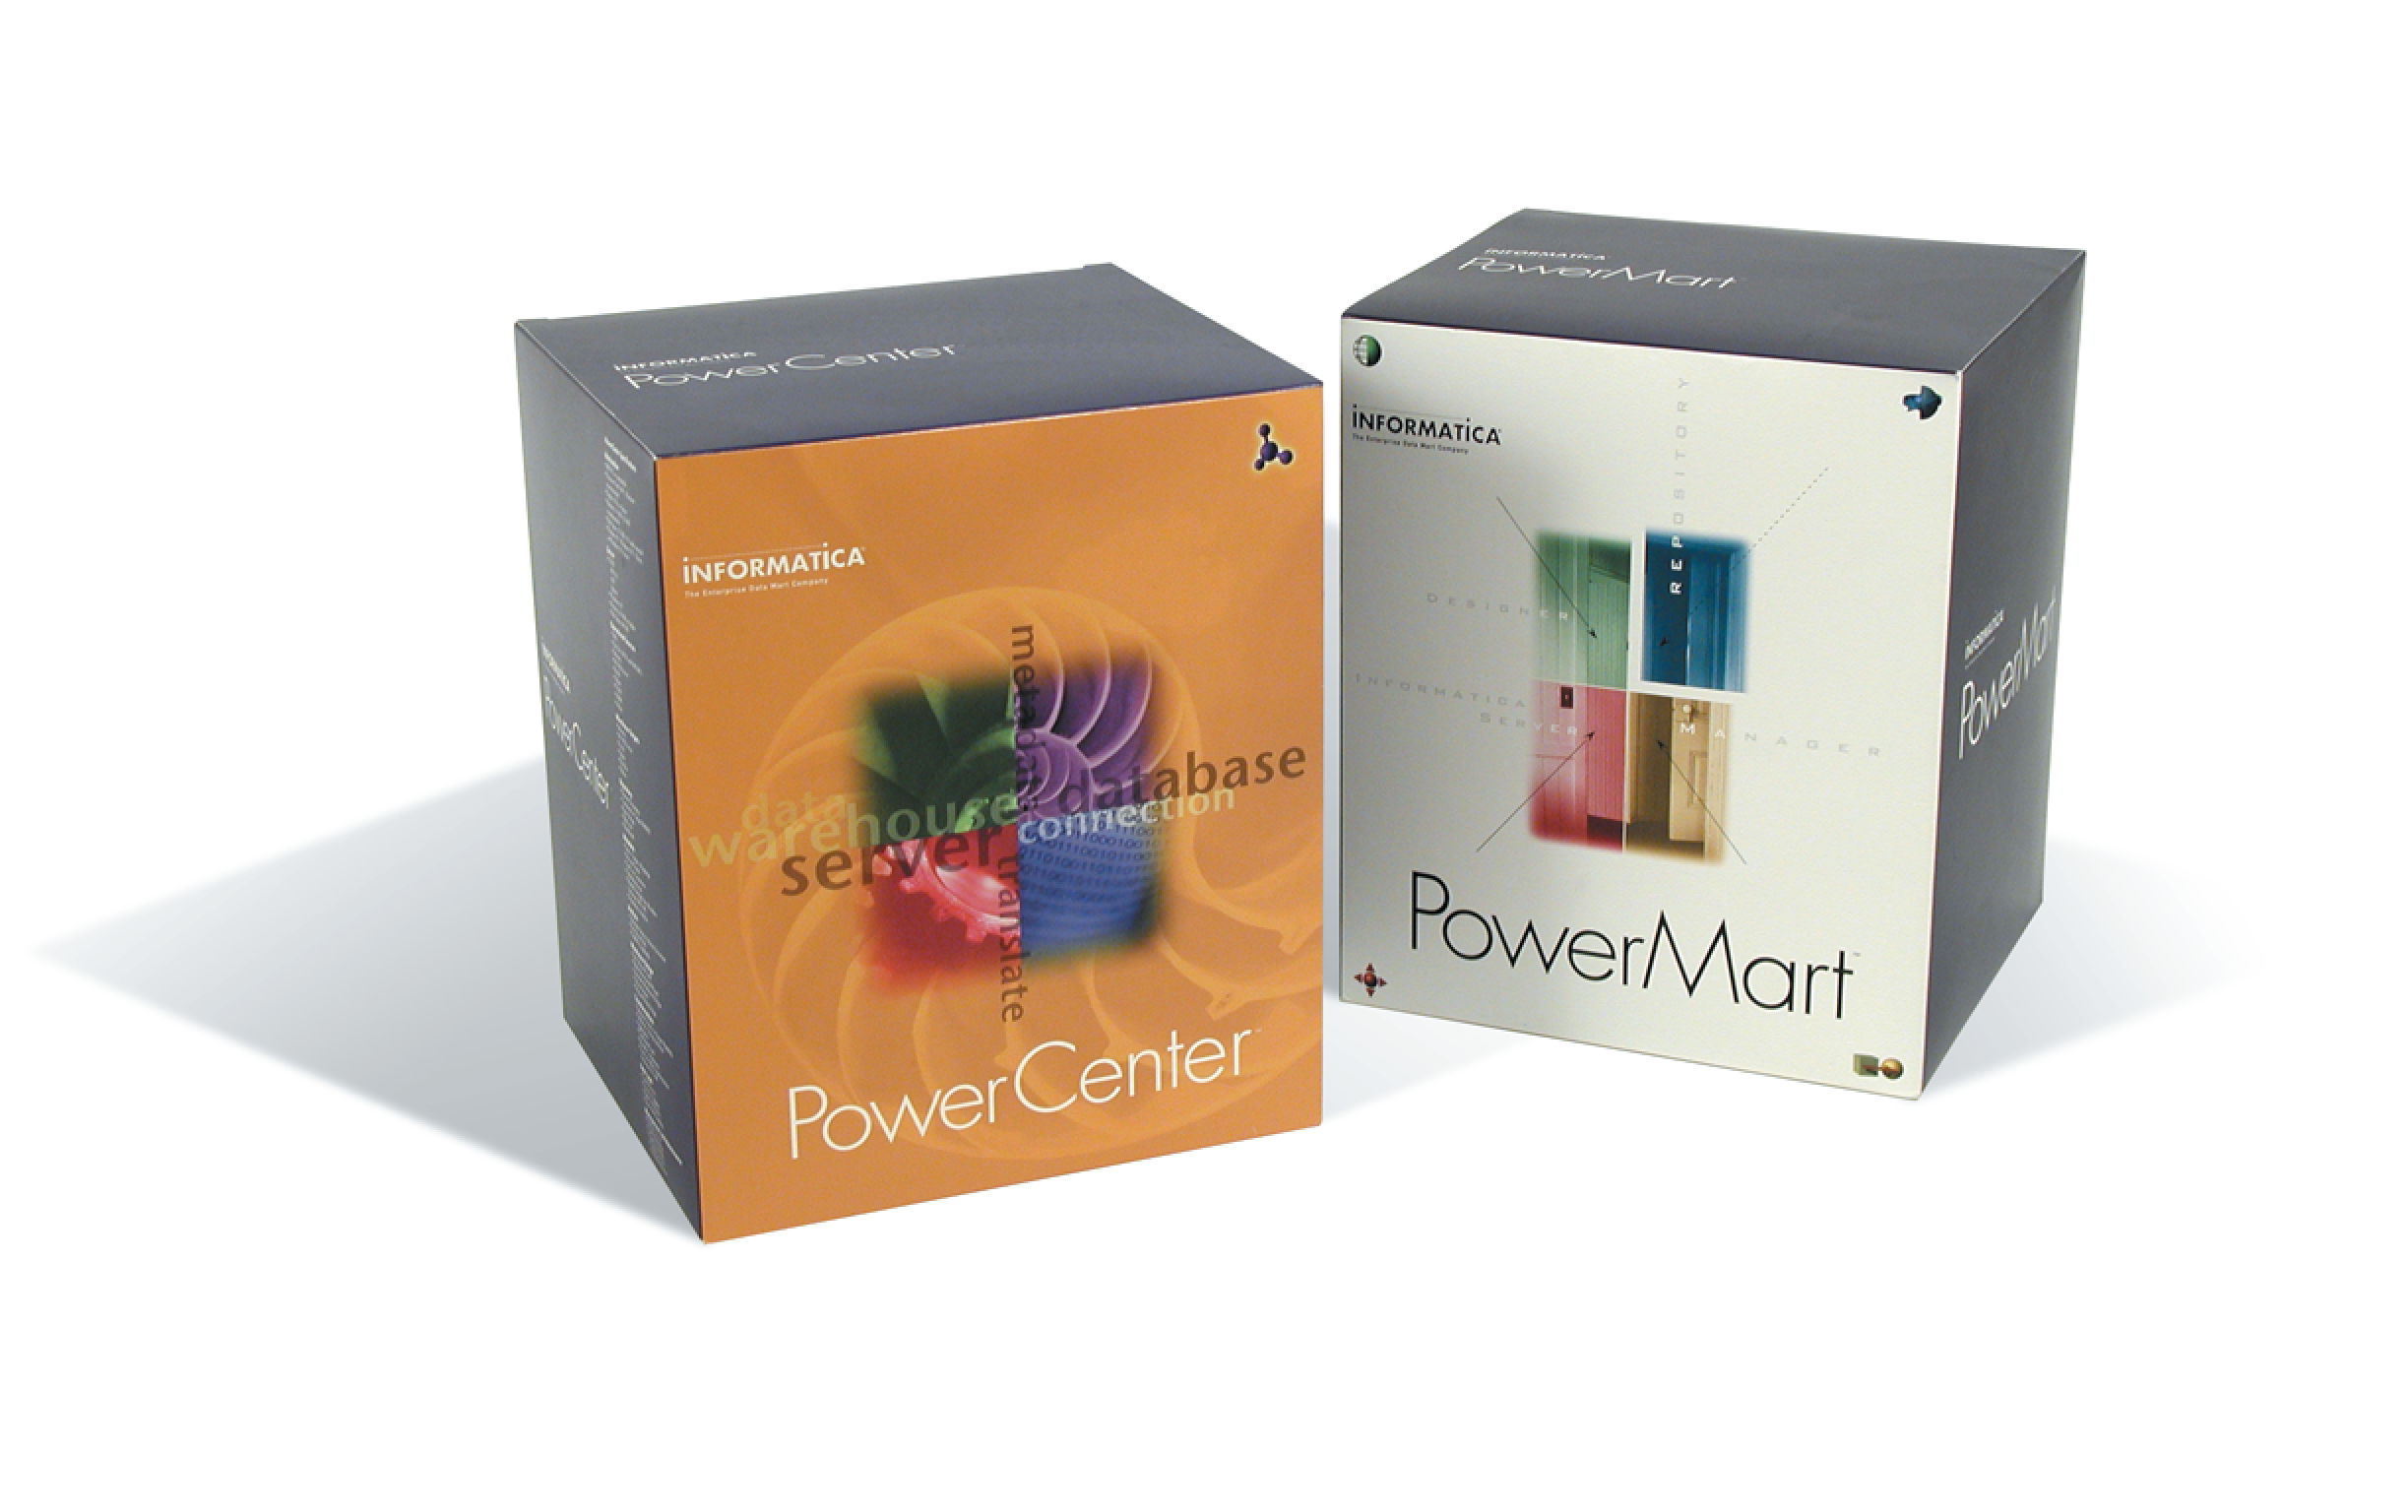 Informatica —Product Packaging